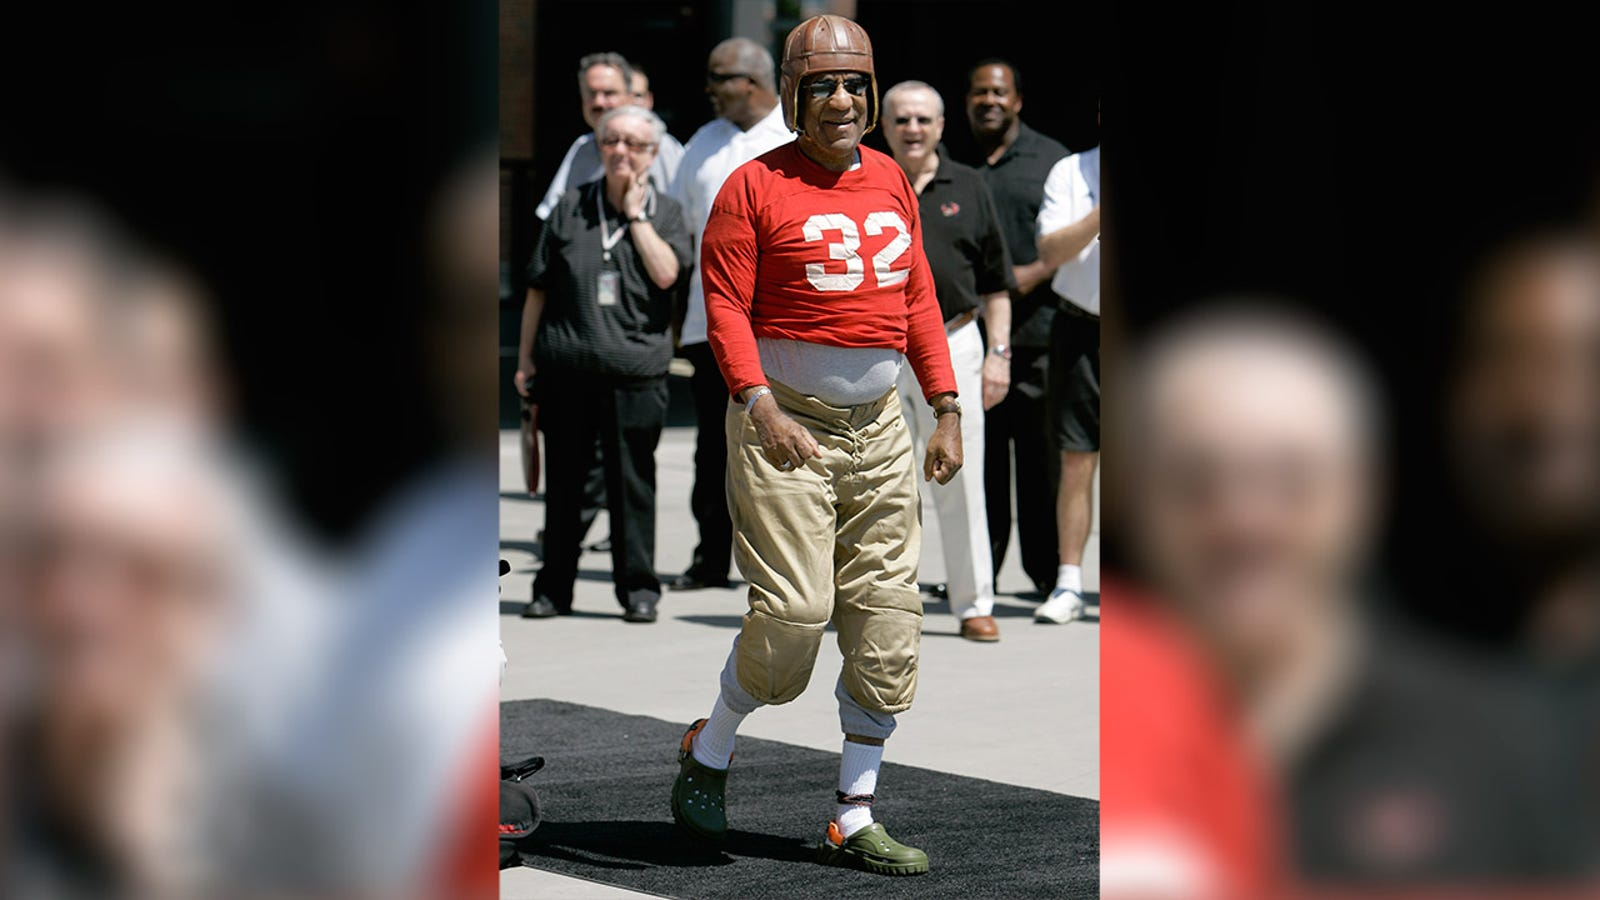 Bill Cosby wore an old-timey football uniform at Temple football media day in 2007.